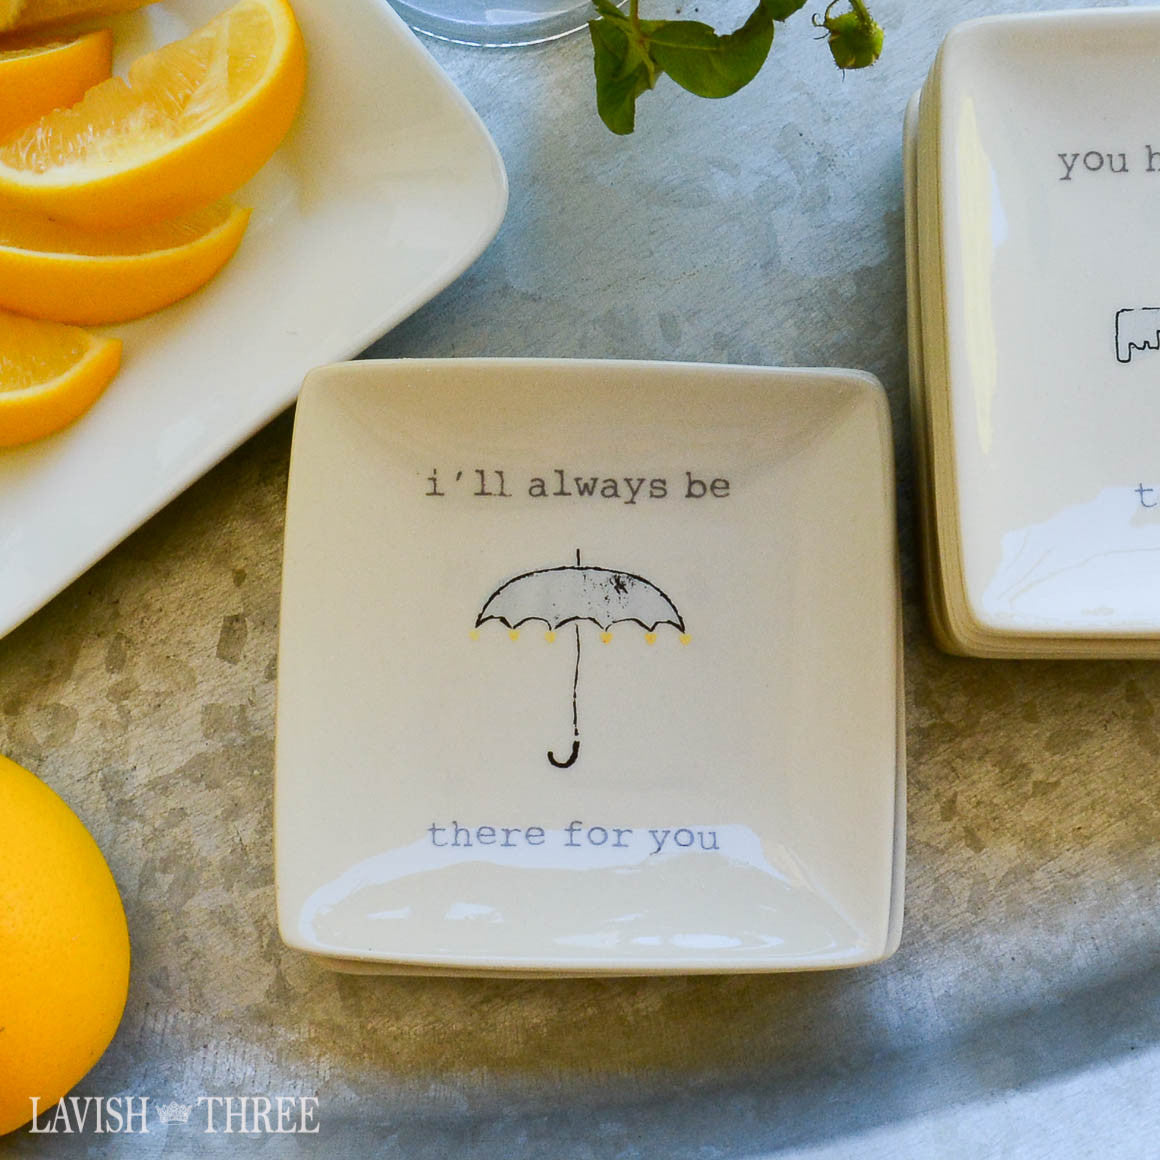 "4"" mini-plates with sayings - i'll always be there for you"